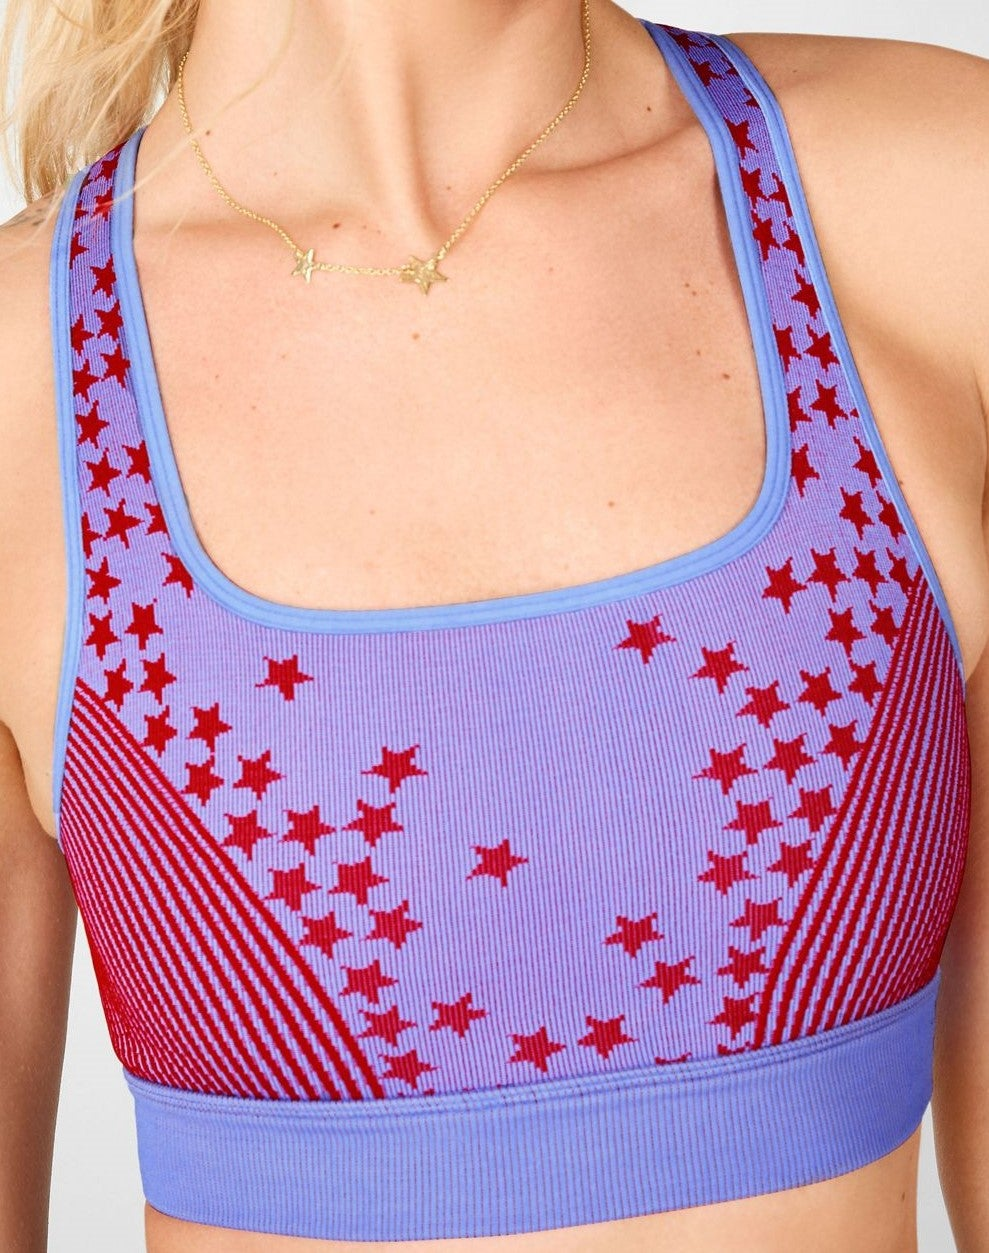 Blue bra with red stars and red stripe detailing